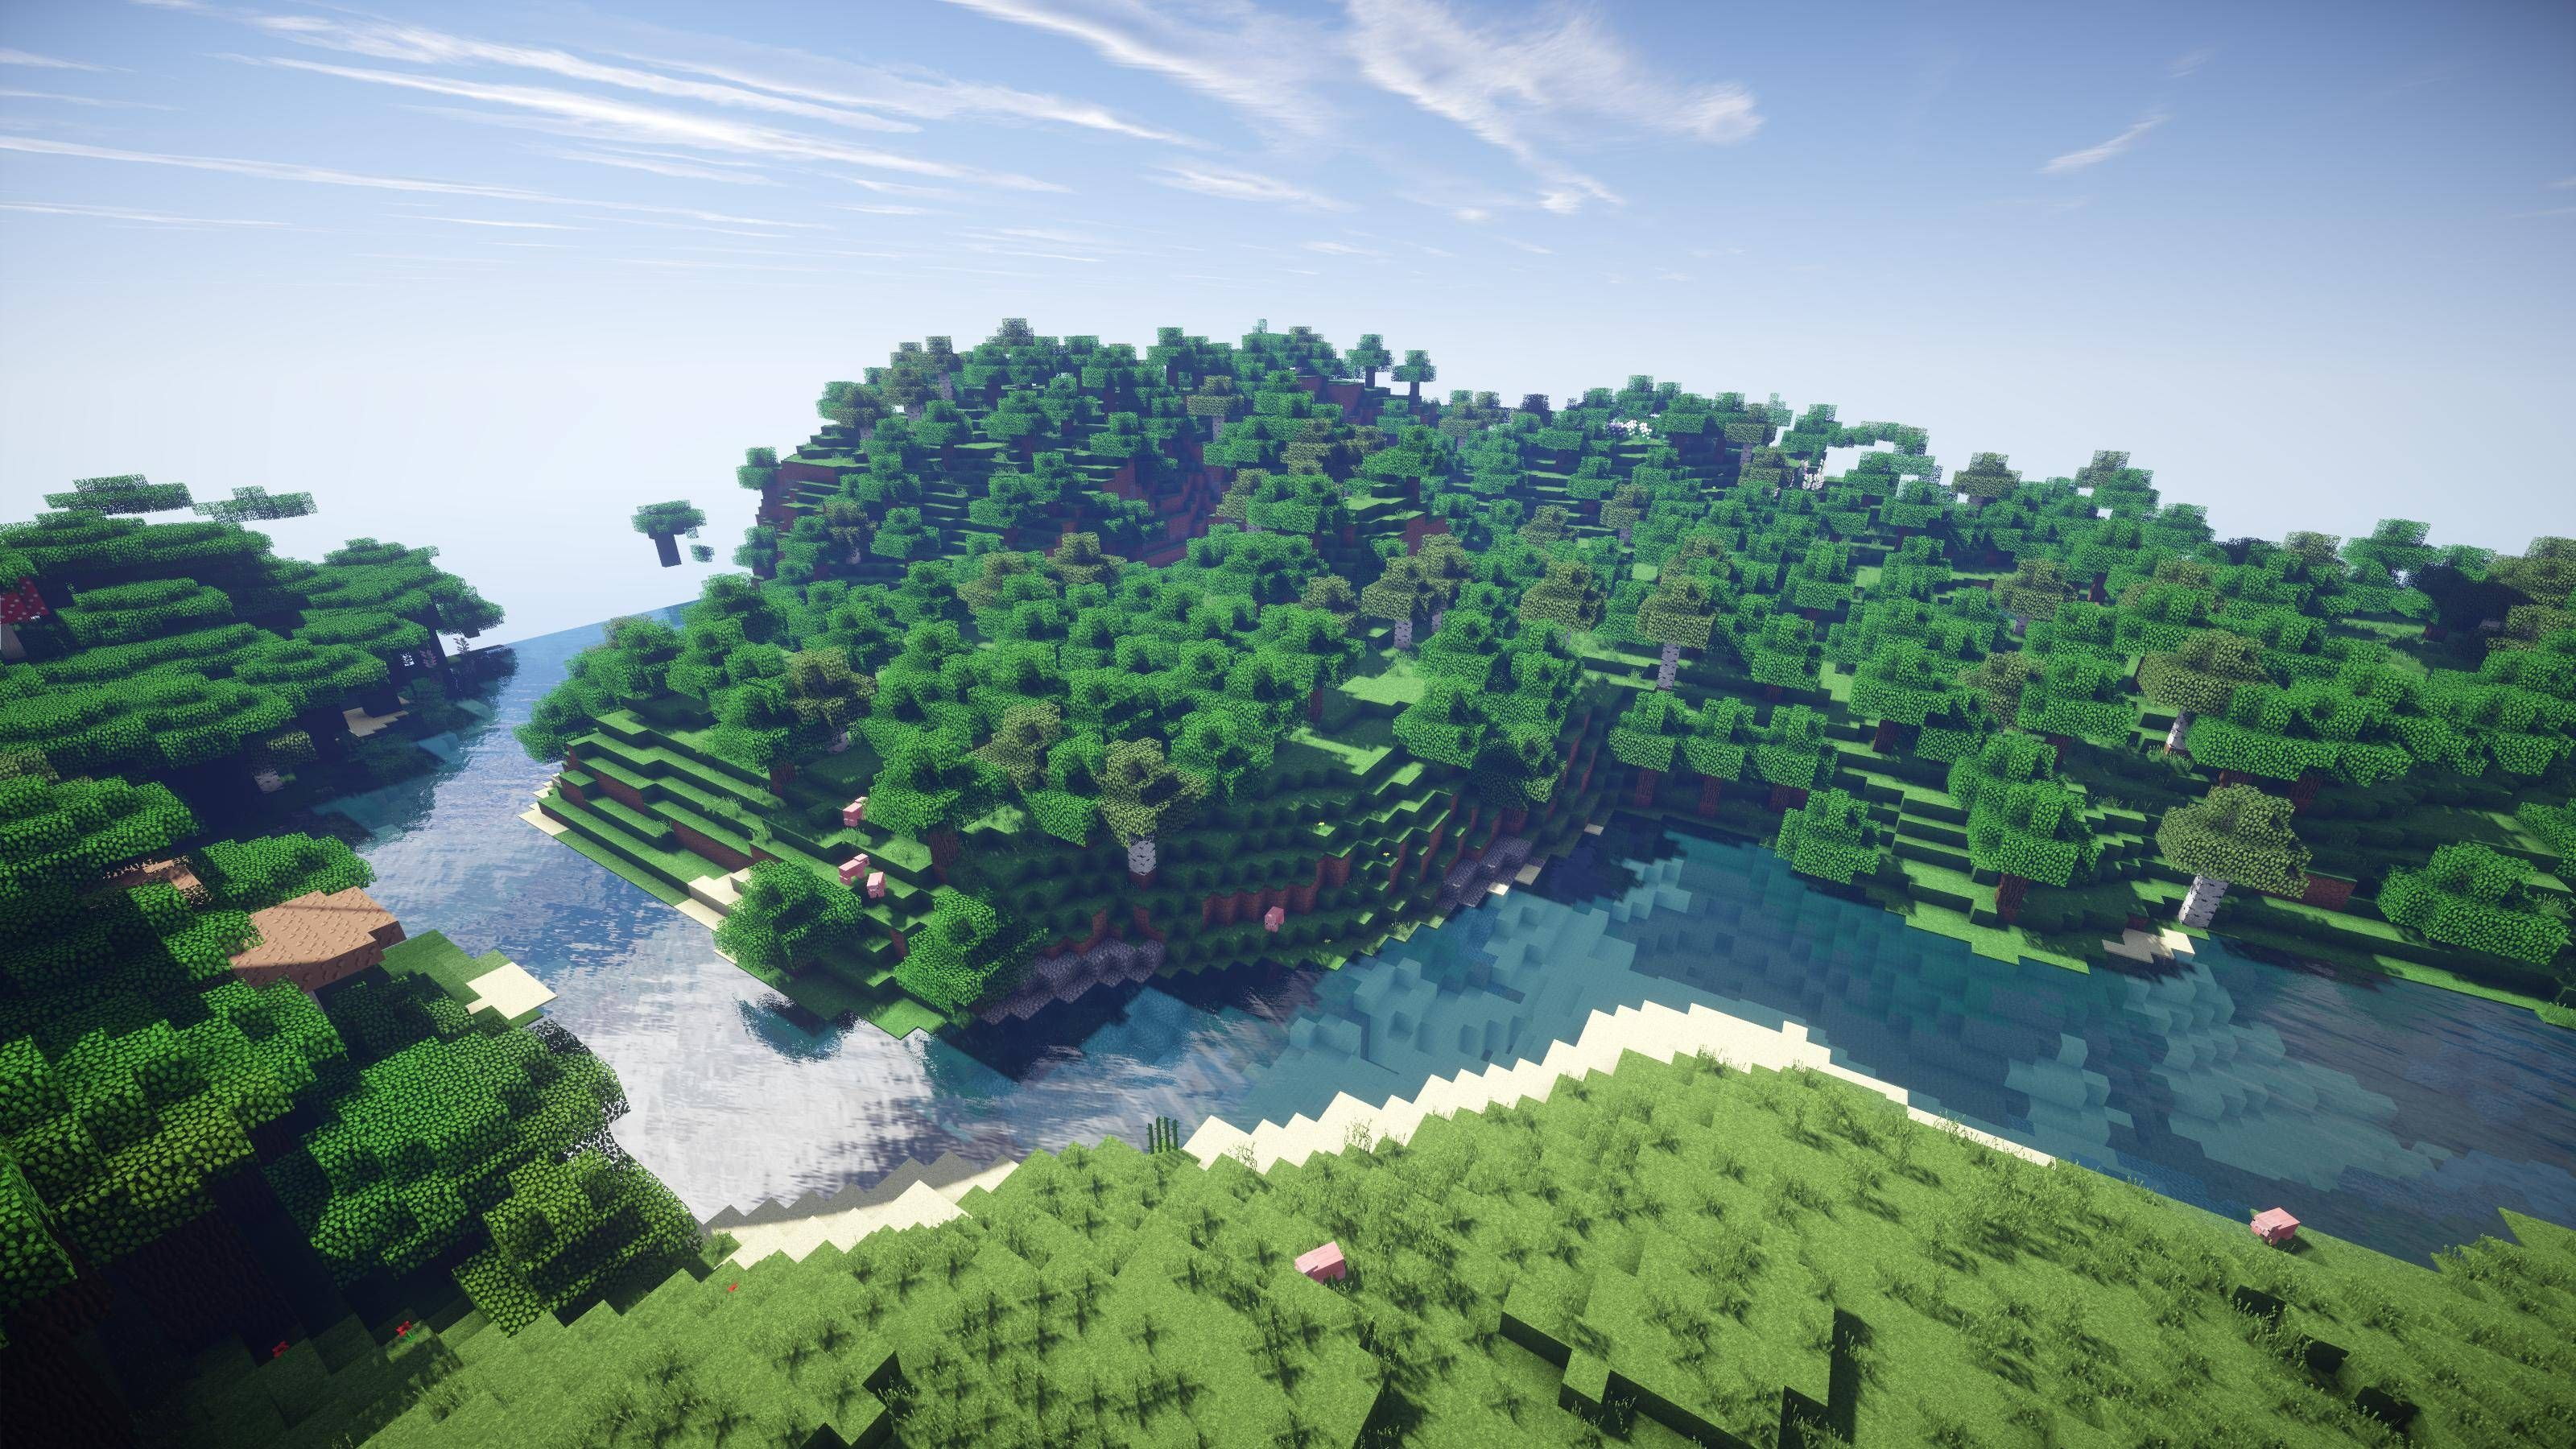 Minecraft Picture Backgrounds Hd Wallpaper Gam Wallpaper Minecraft Wallpaper Minecraft Shaders Minecraft Pictures